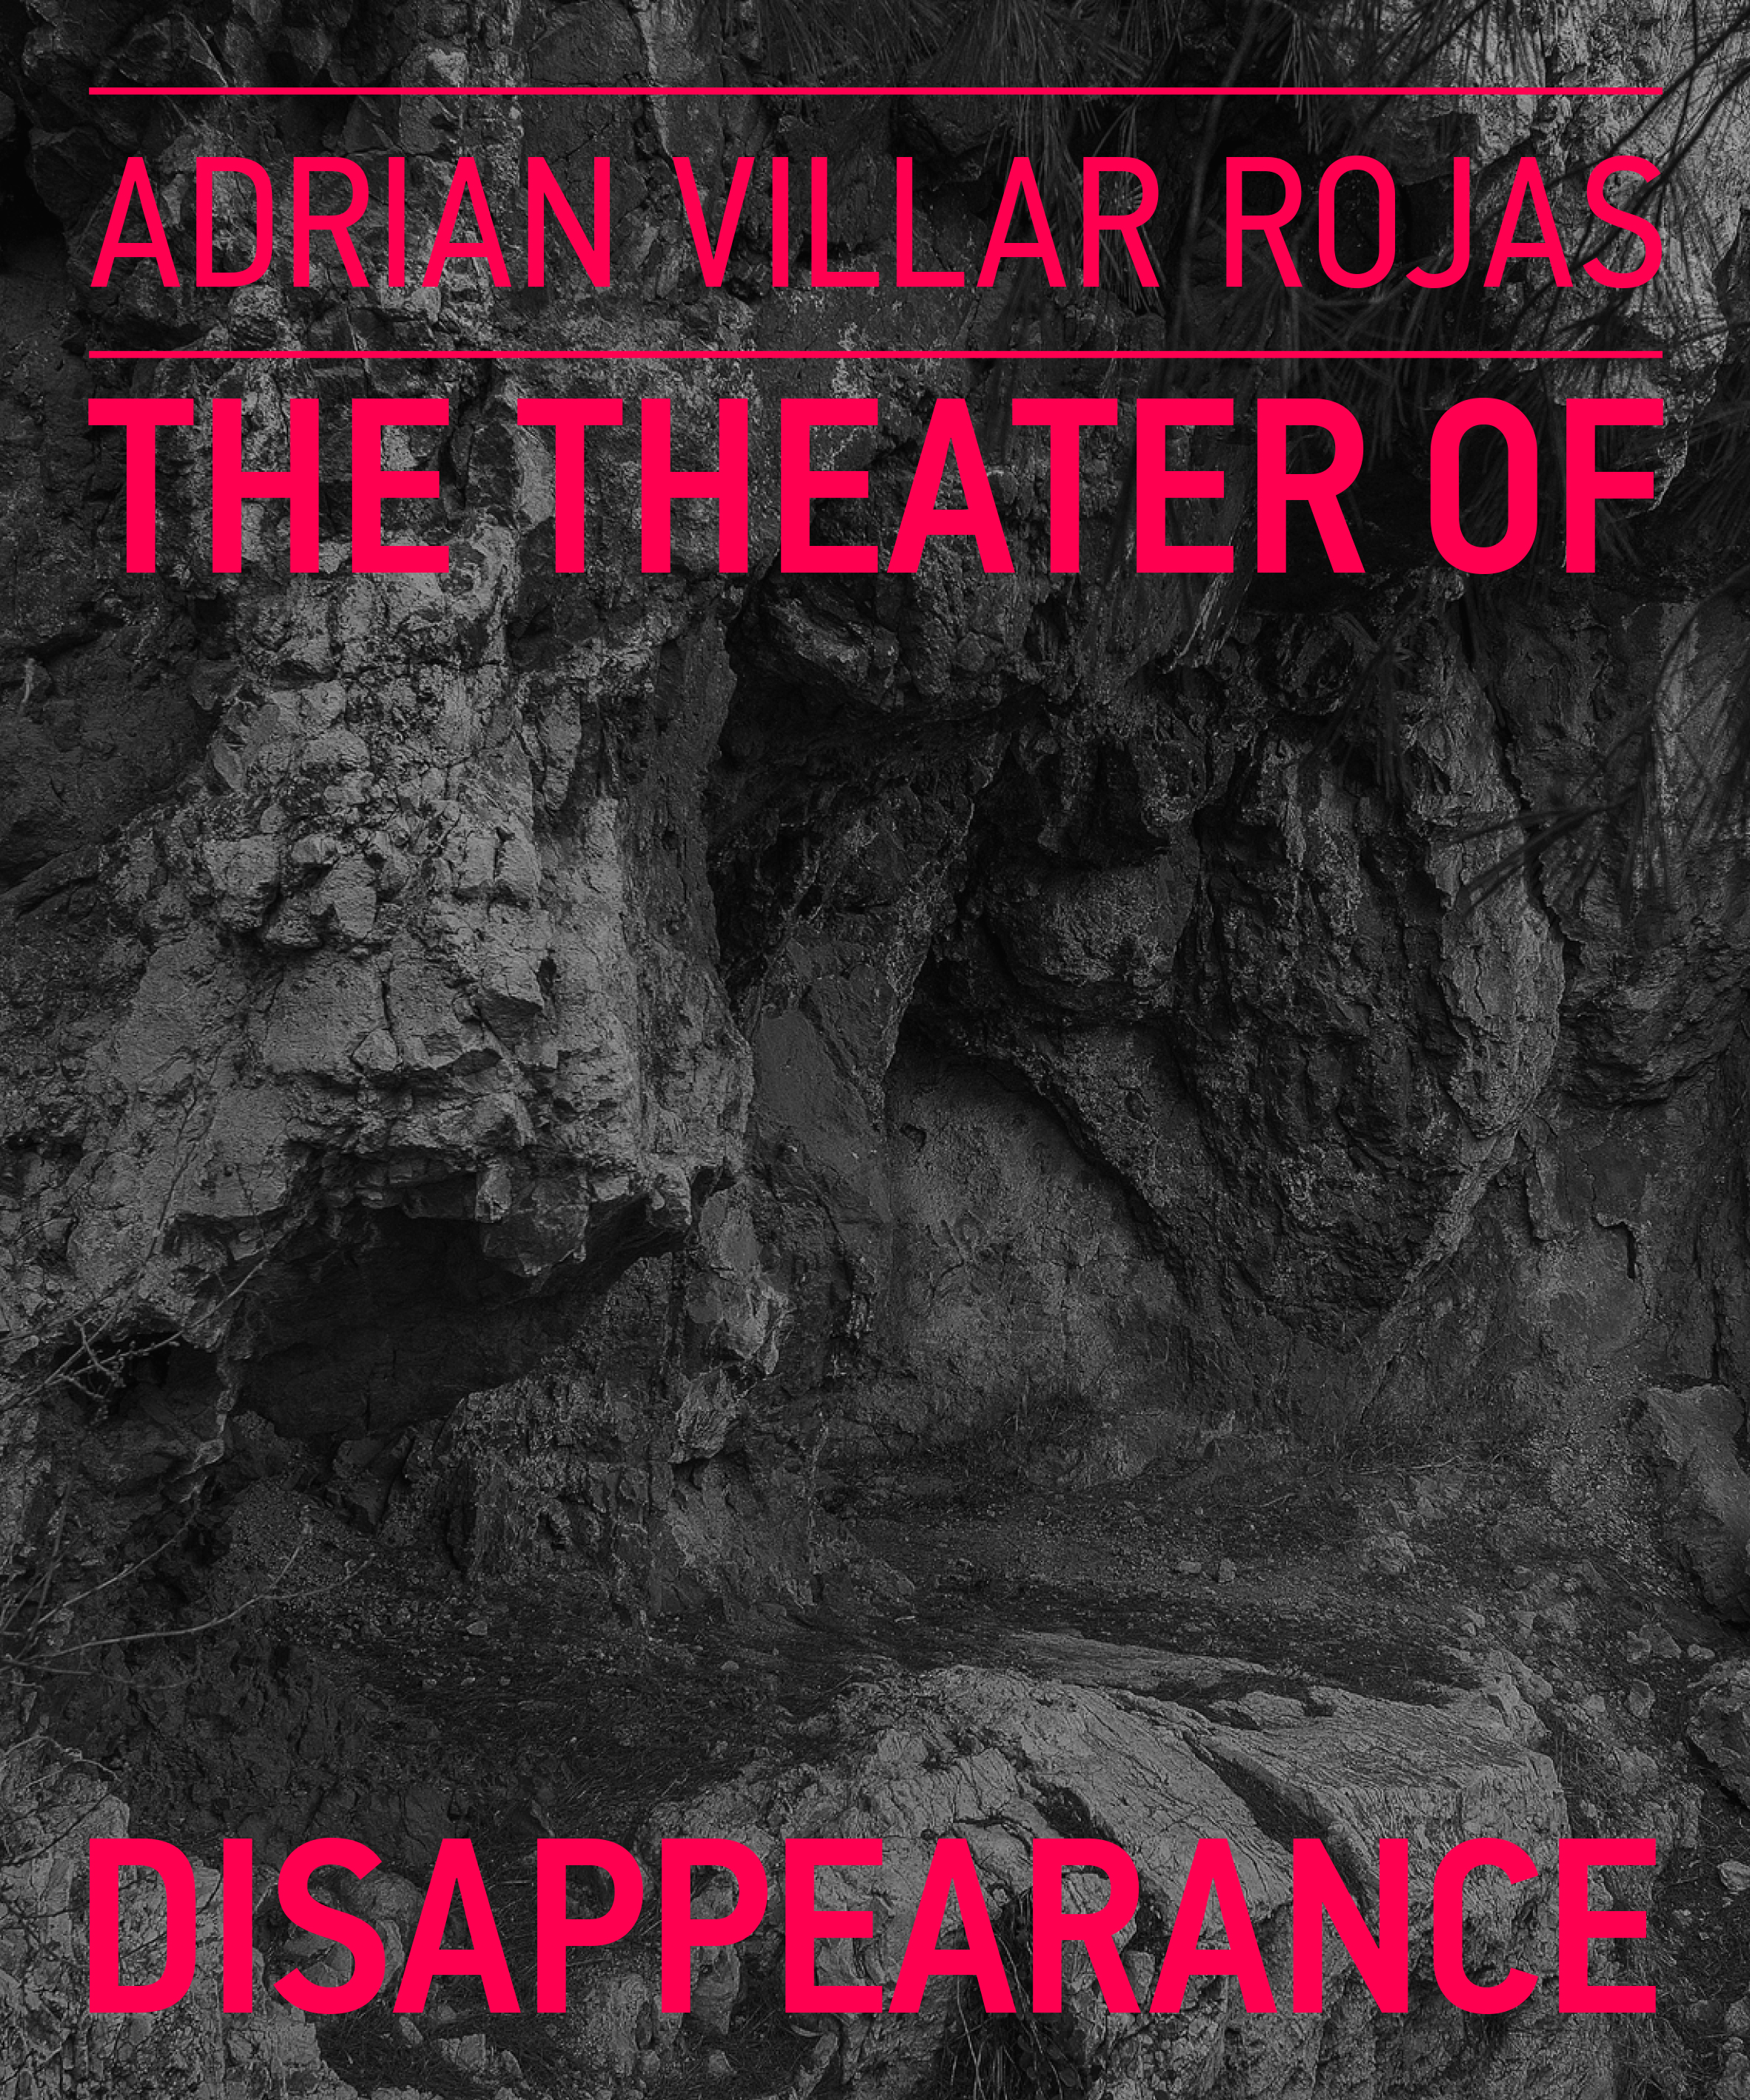 Adrián Villar Rojas: The Theater of Disappearance. National Observatory of Athens, Hill of the Nymphs. Commissioned and presented by NEON. Exhibition Dates: 1 June – 24 September 2017